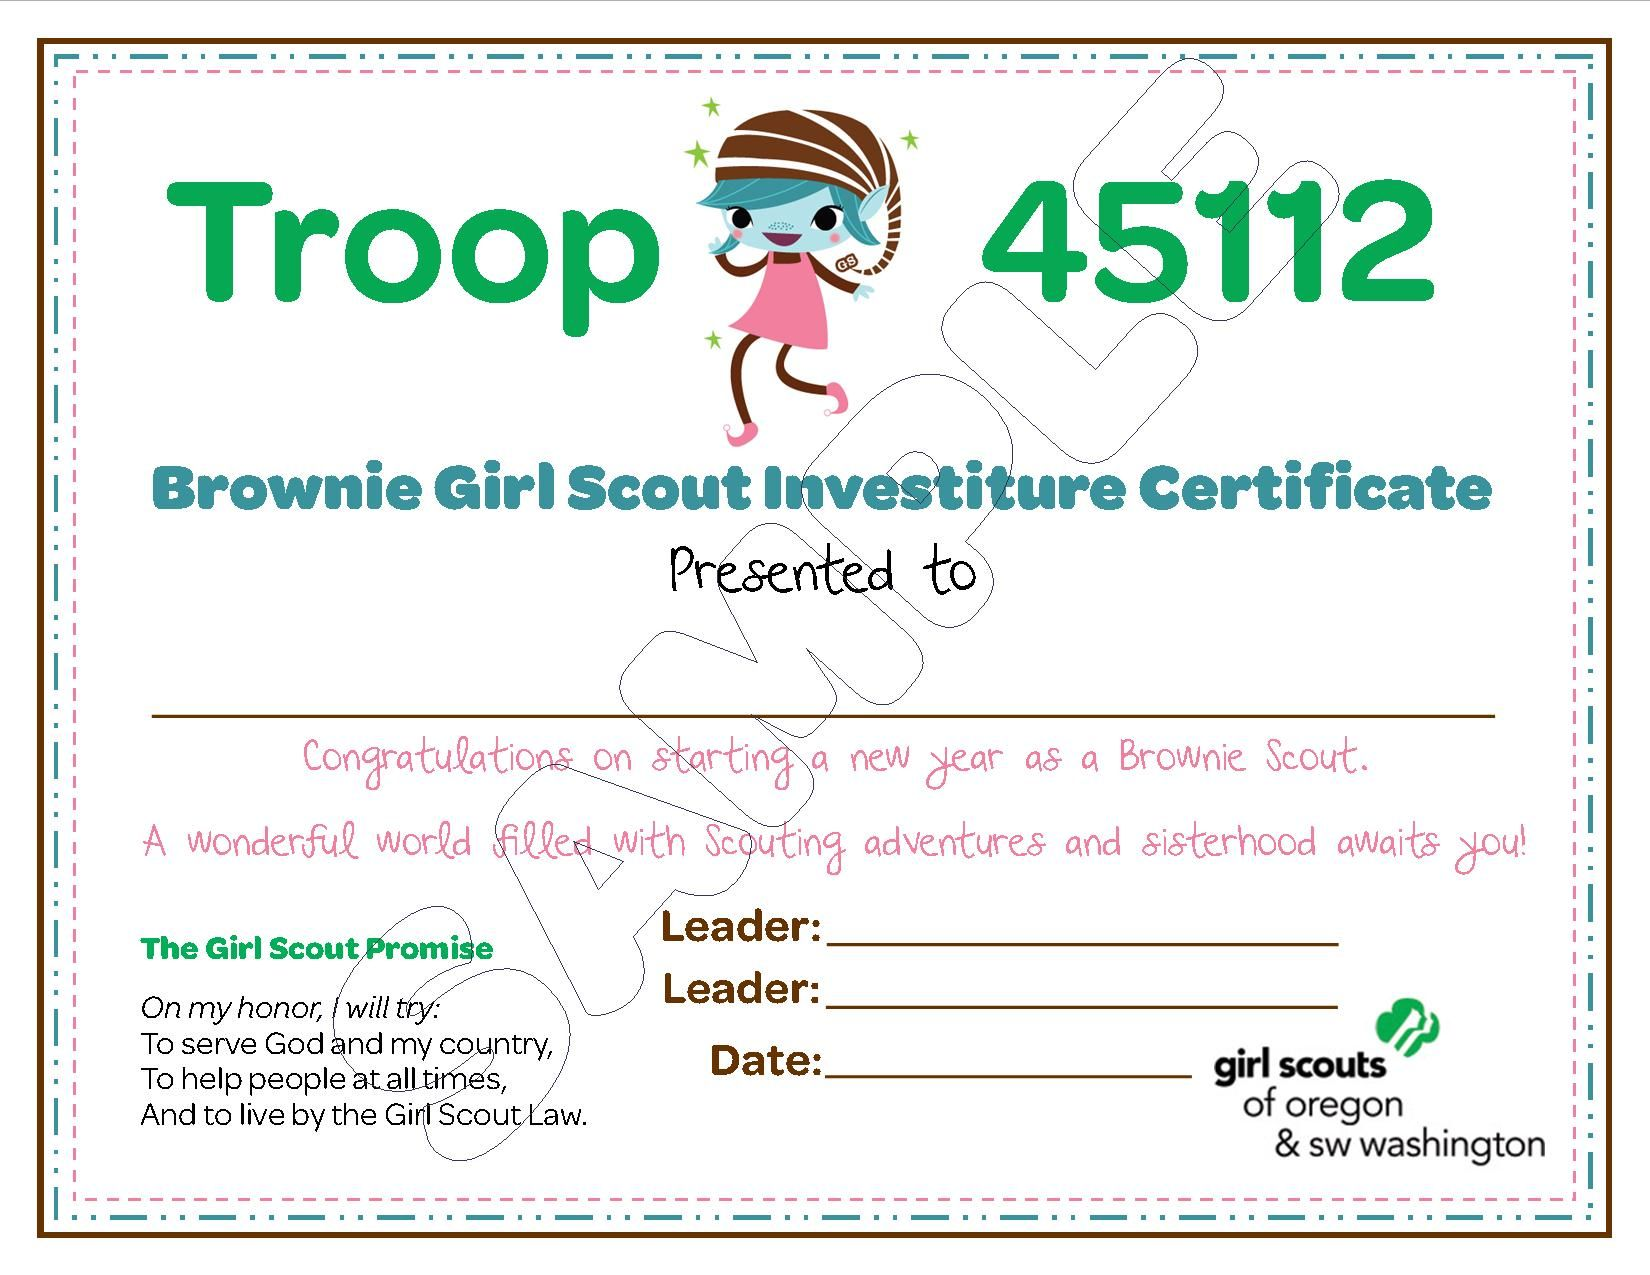 Brownie Troop Investiture With Images